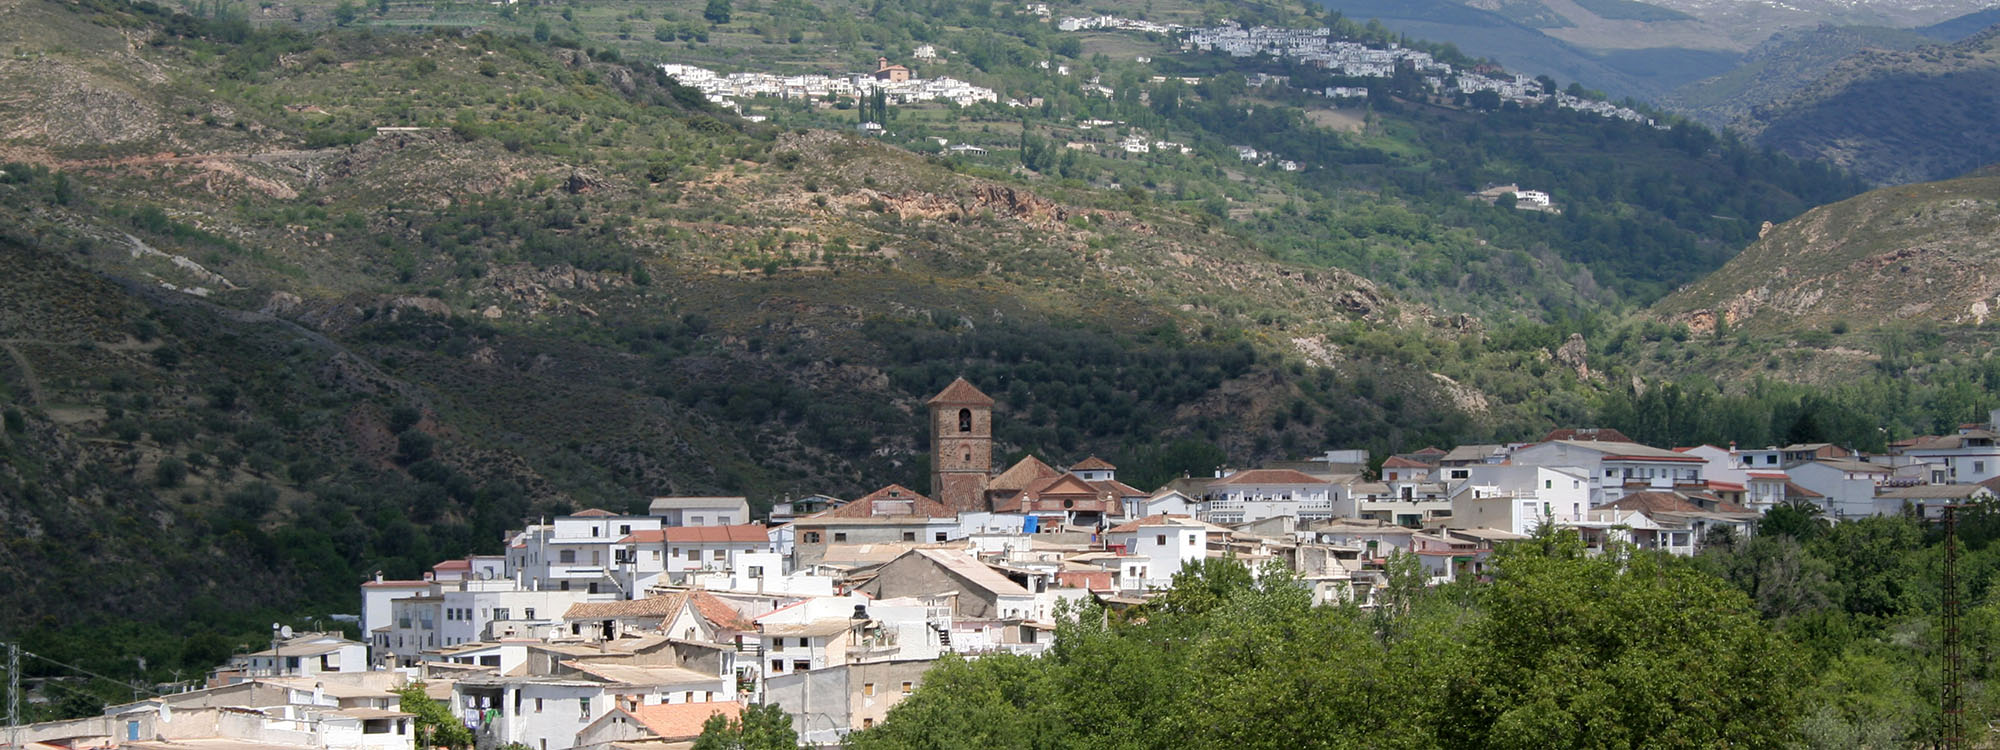 DAY 4: WHITE VILLAGES OF THE ALPUJARRAS